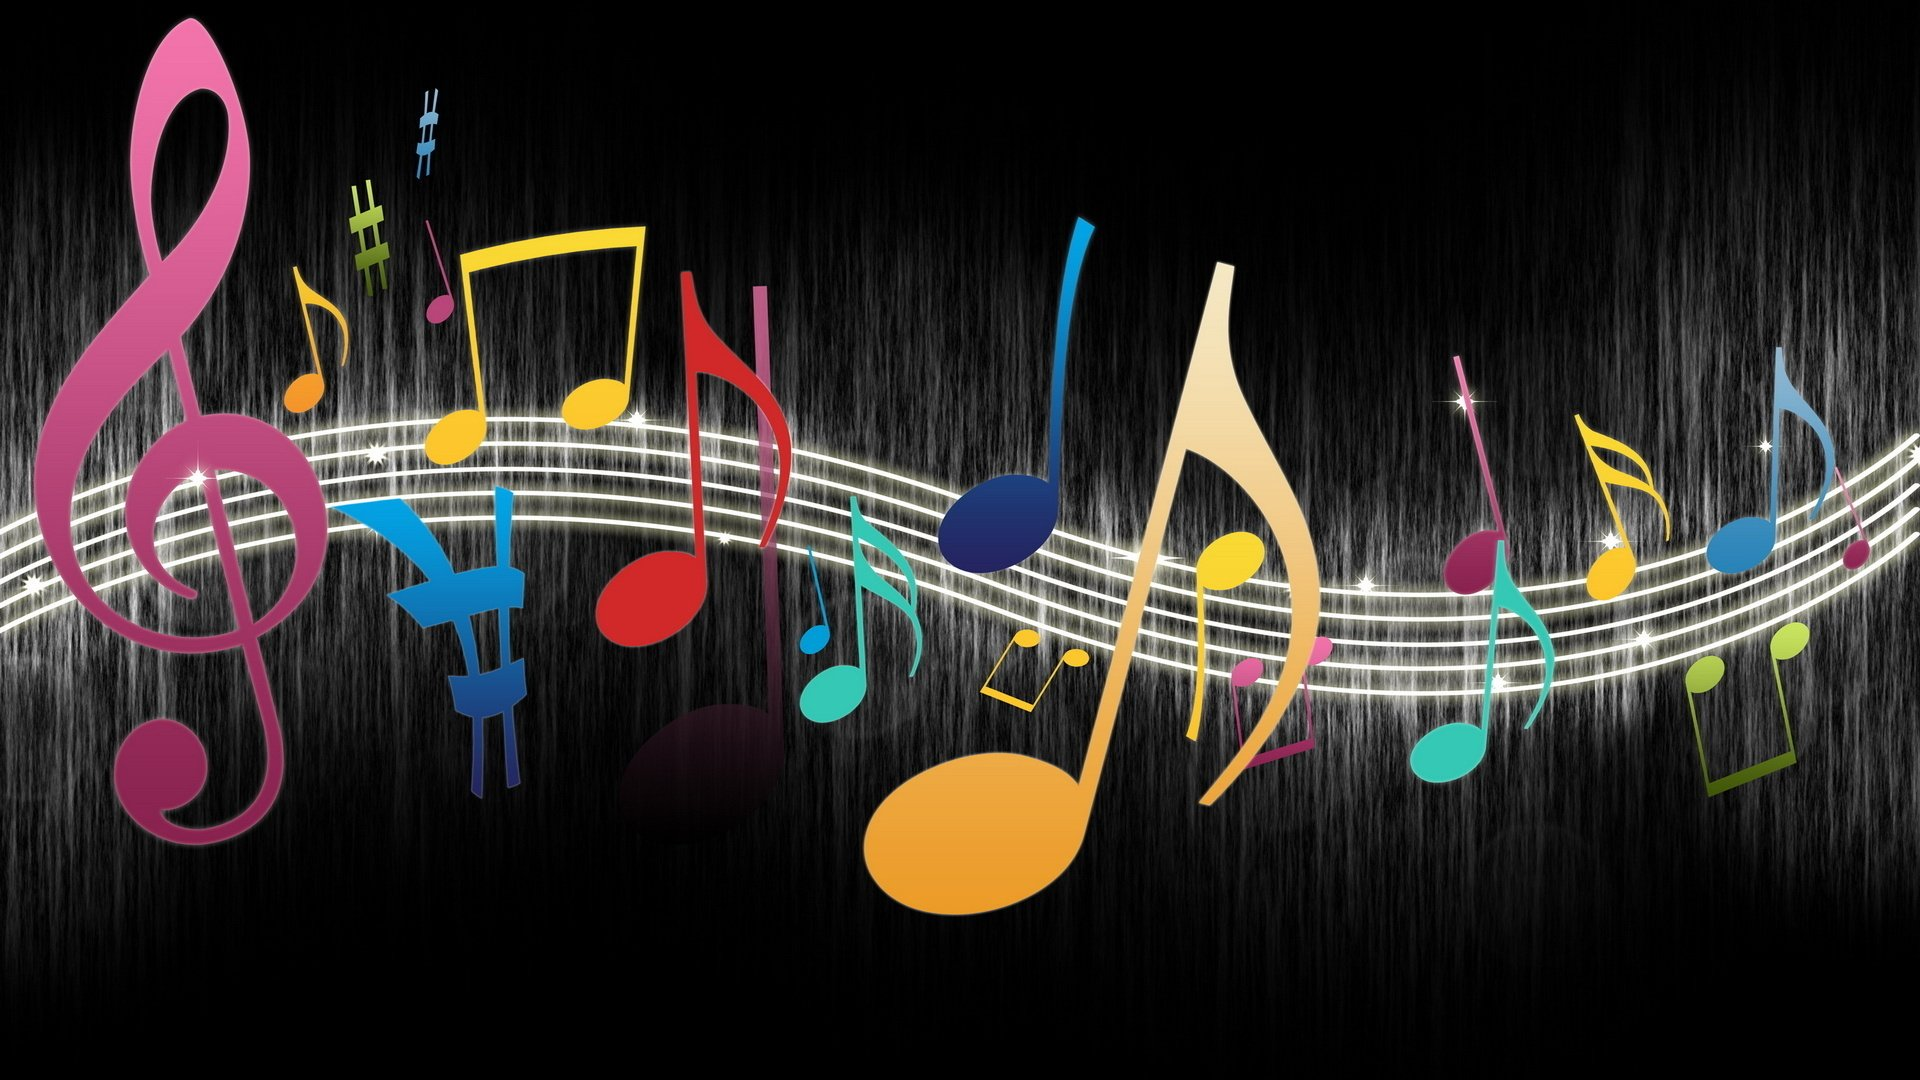 3d Colorful Music Notes Wallpaper: Colorful Music Notes Wallpaper